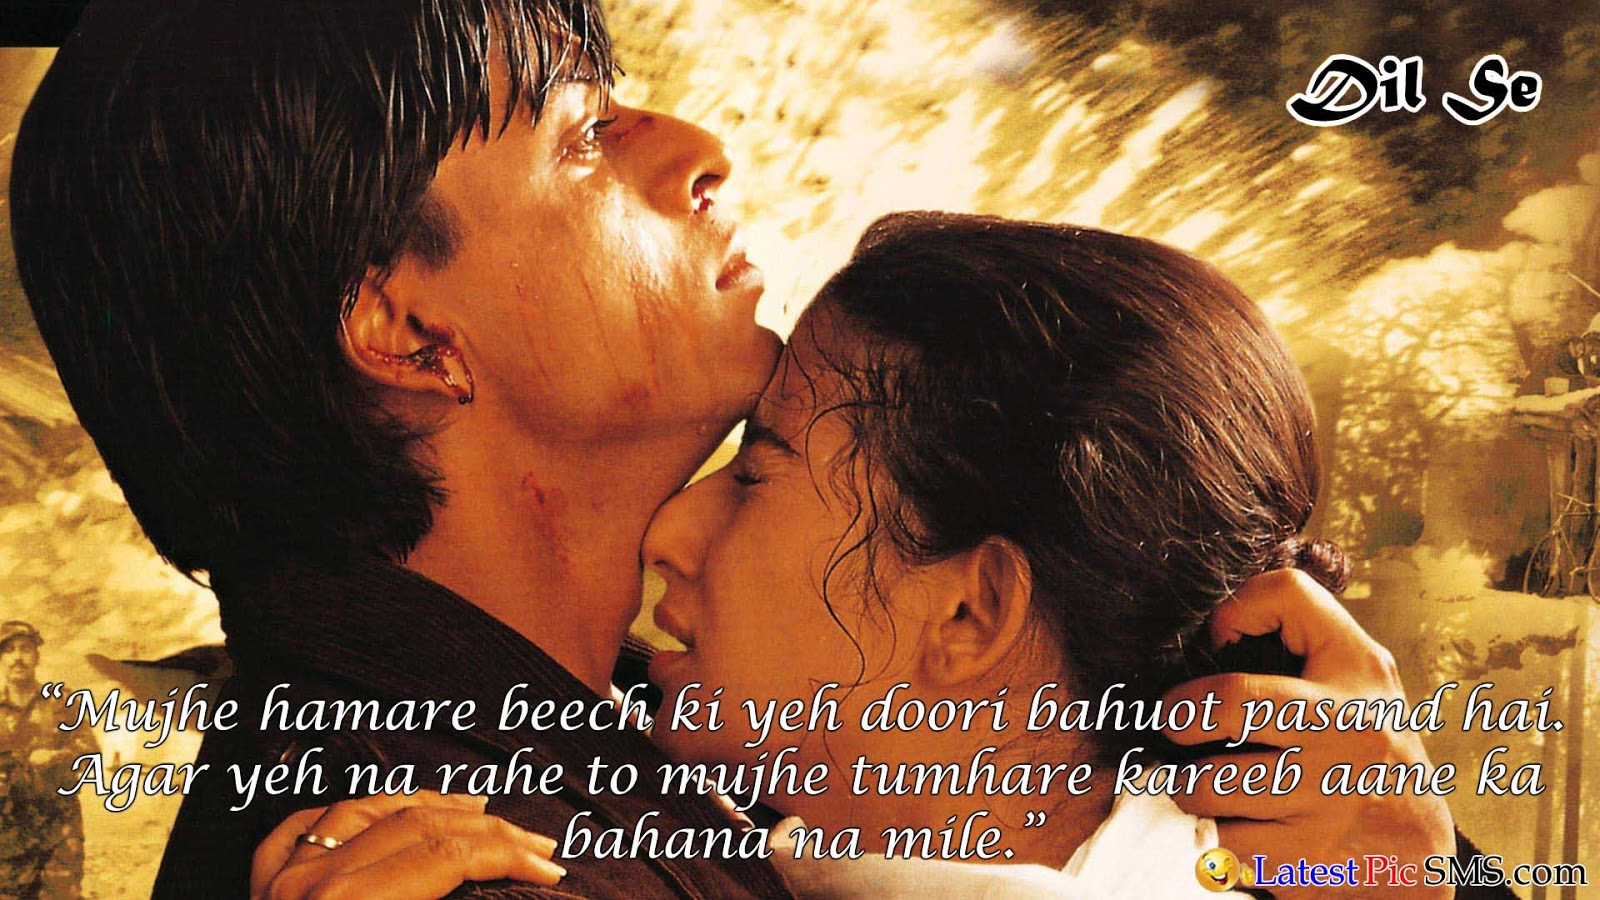 dil se Bollywood Dialogues